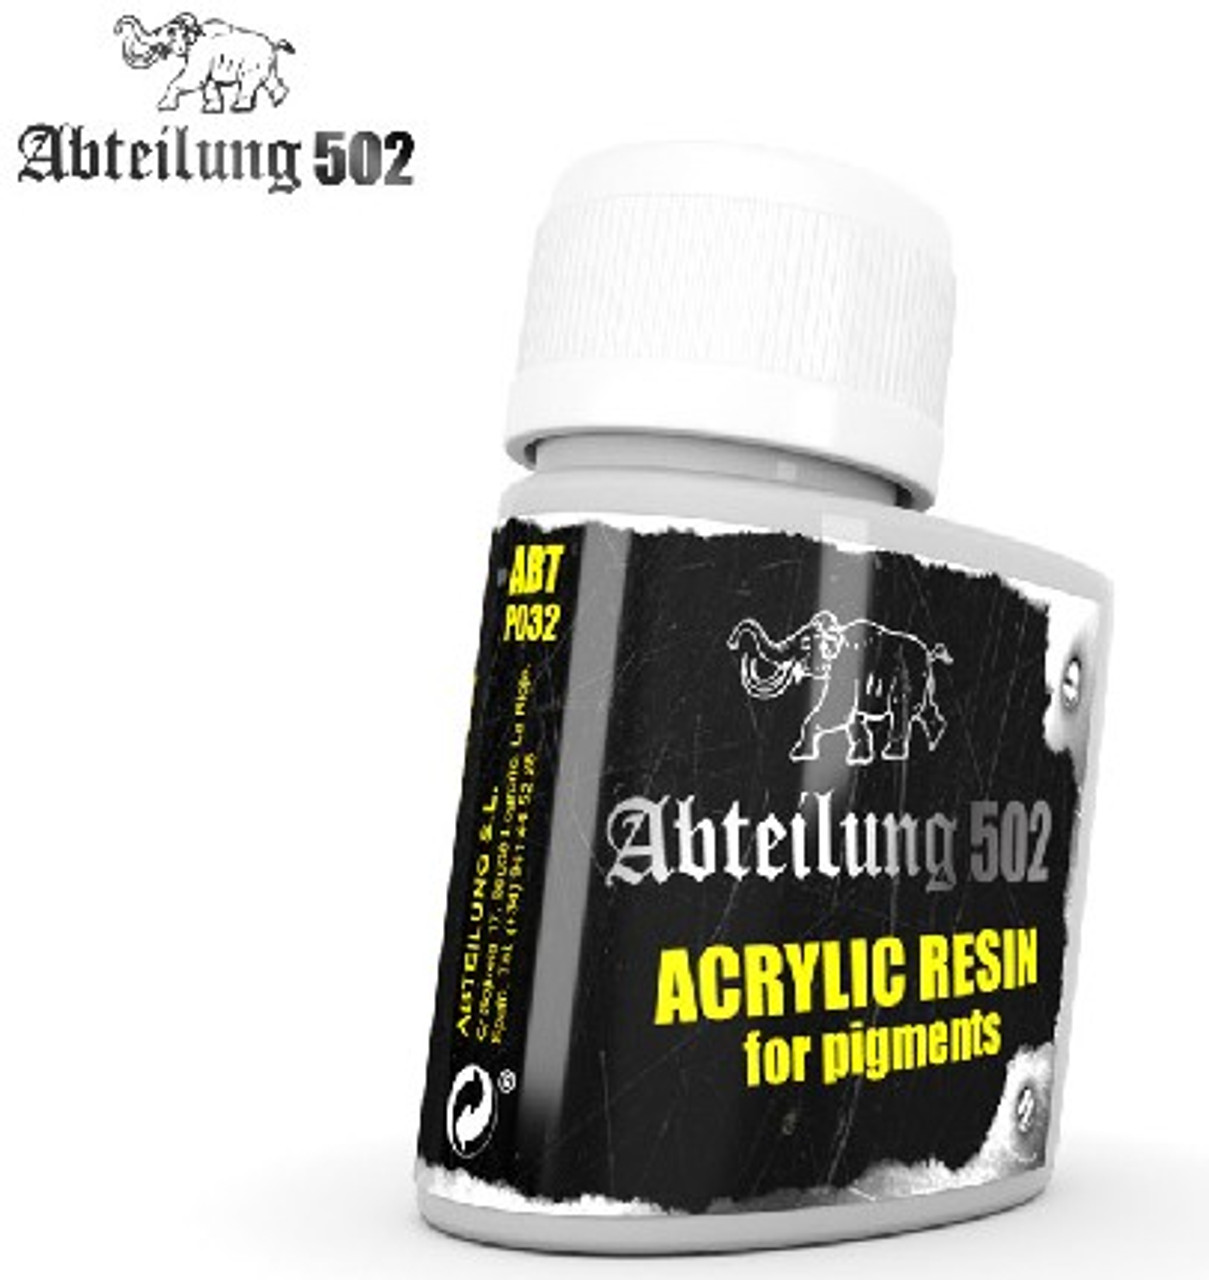 Acrylic Resin for Pigments 75ml Bottle